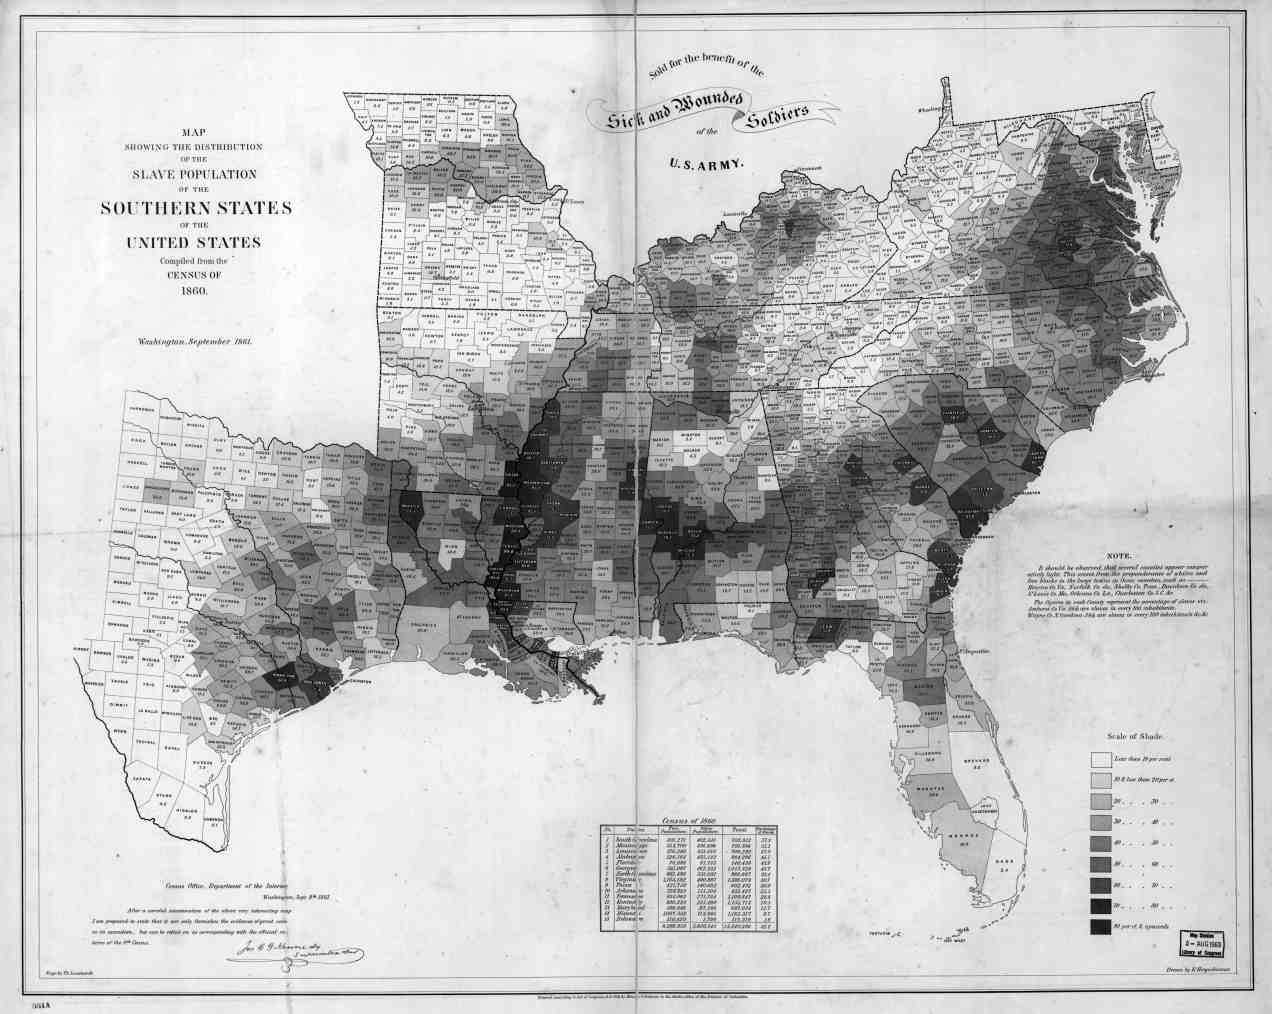 Percentage of Slaves by U.S. County, 1860